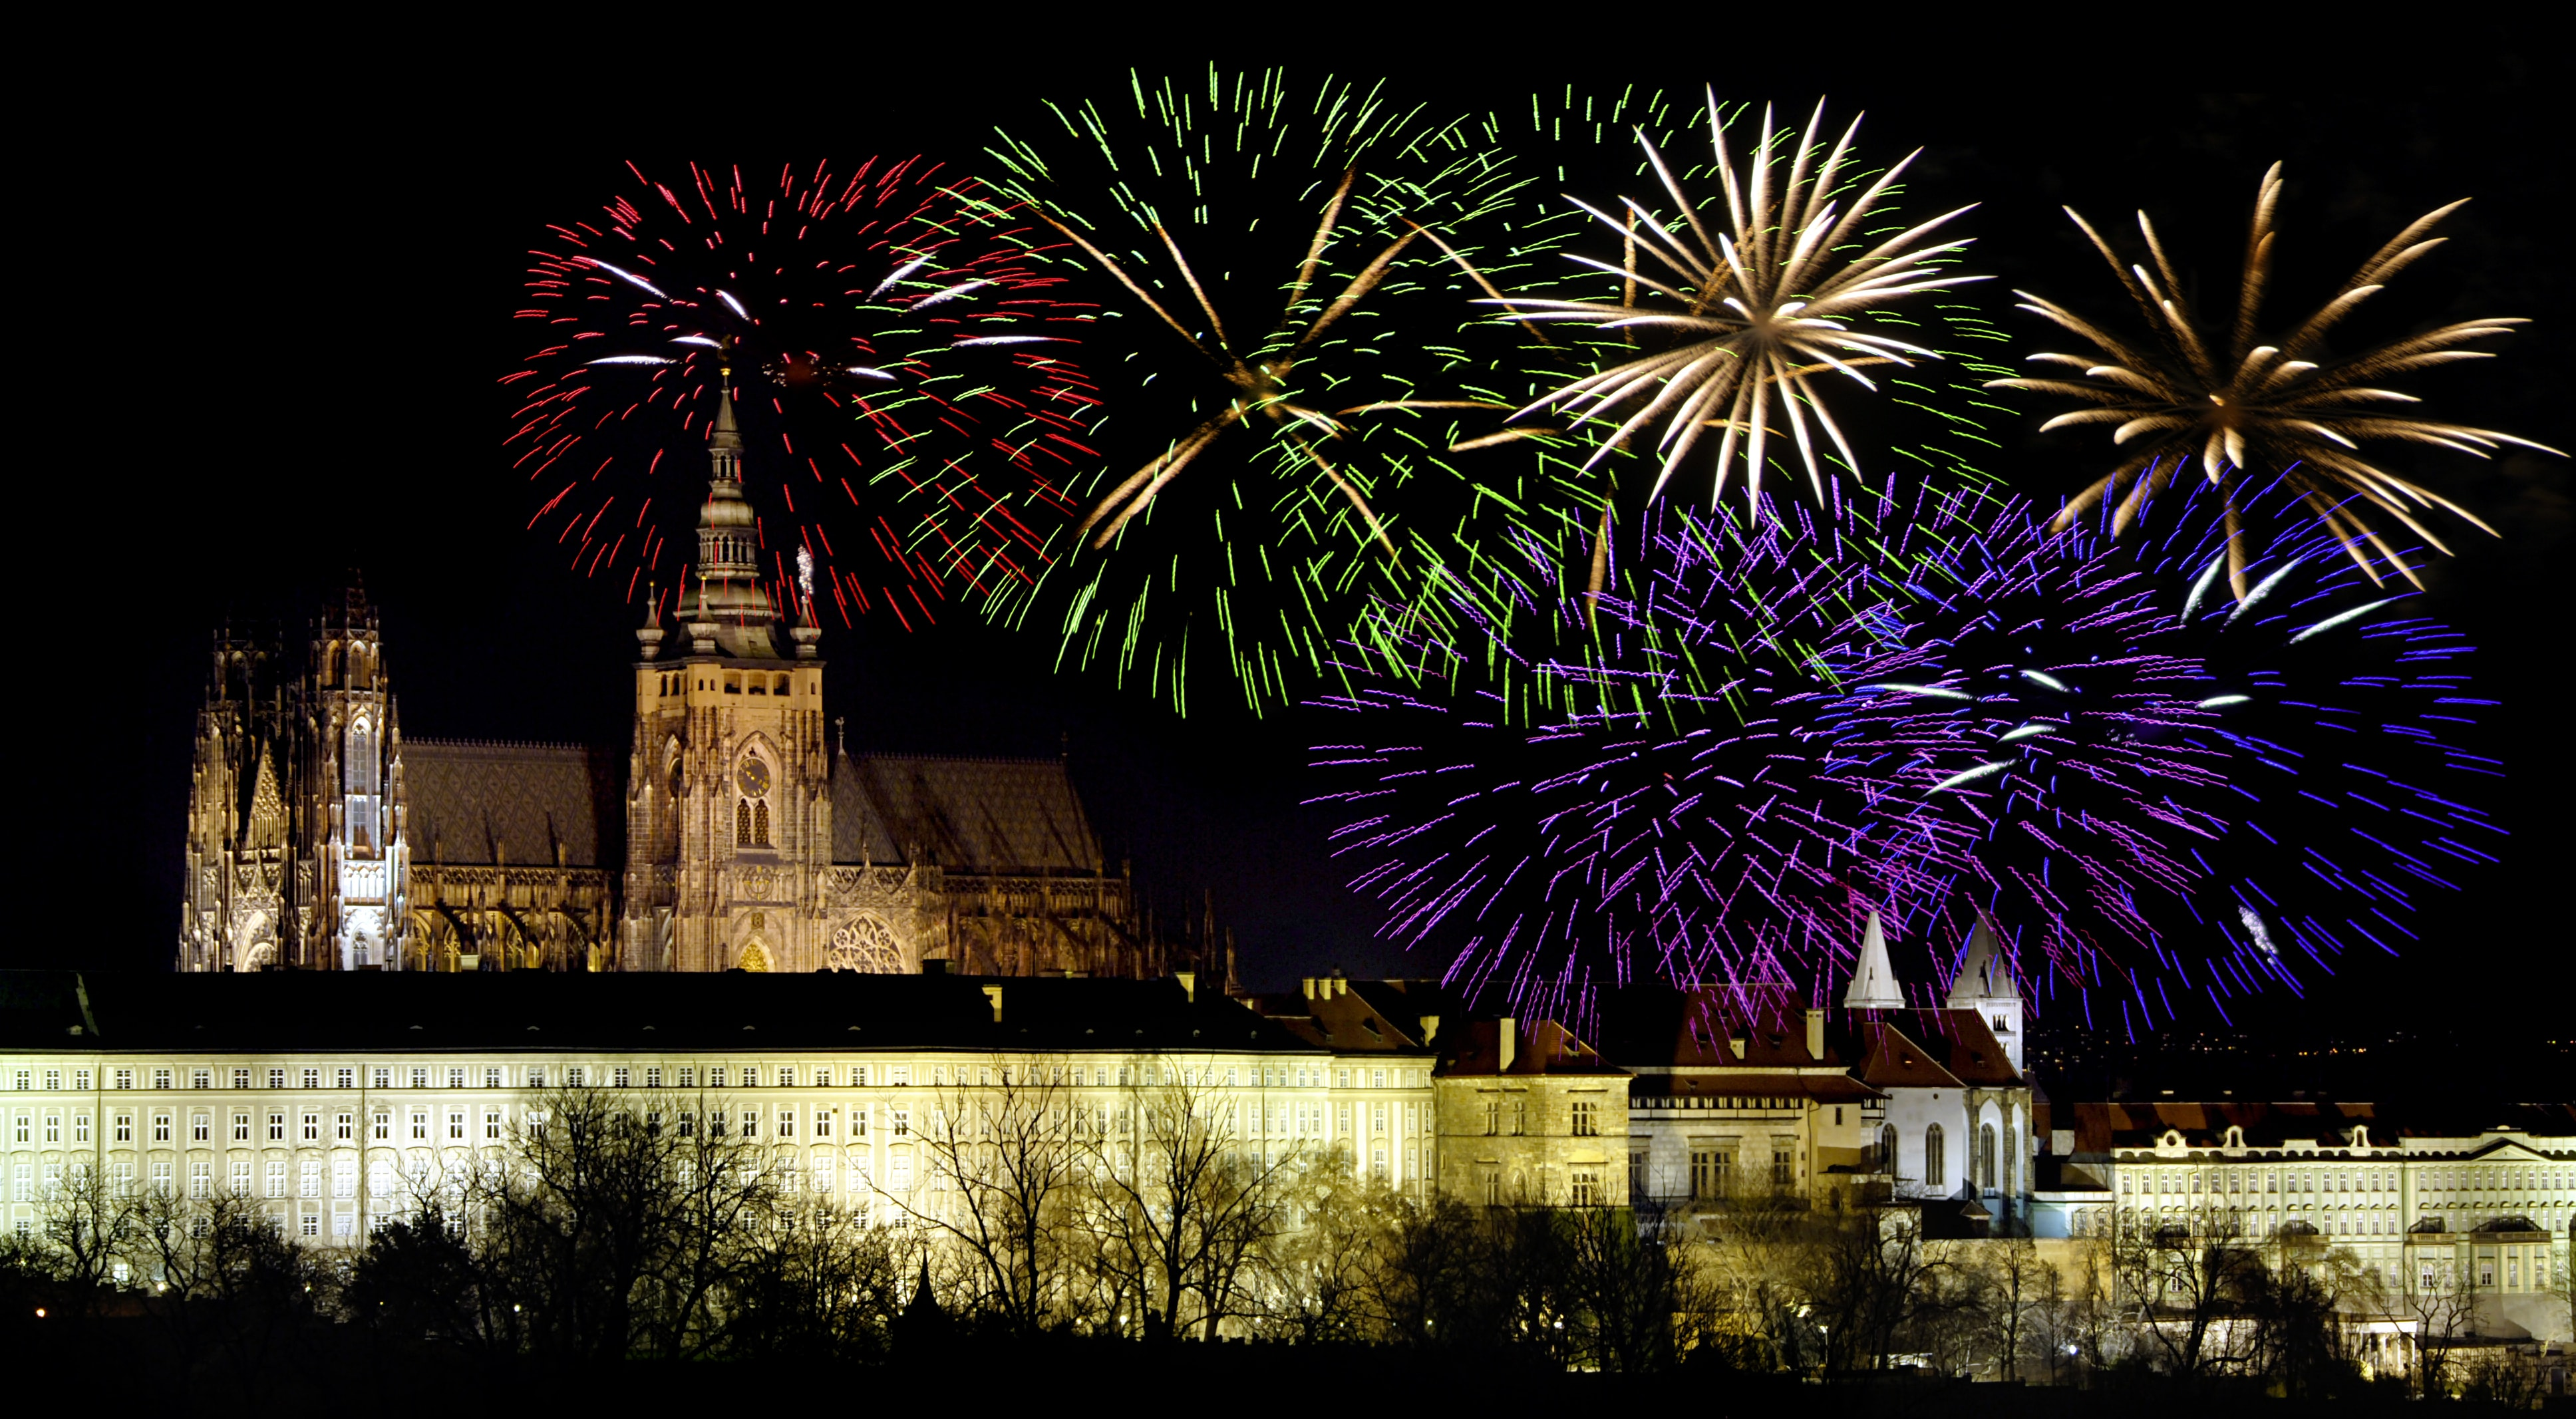 Fireworks, parties, and more: New Year's Eve in Prague 2018-19